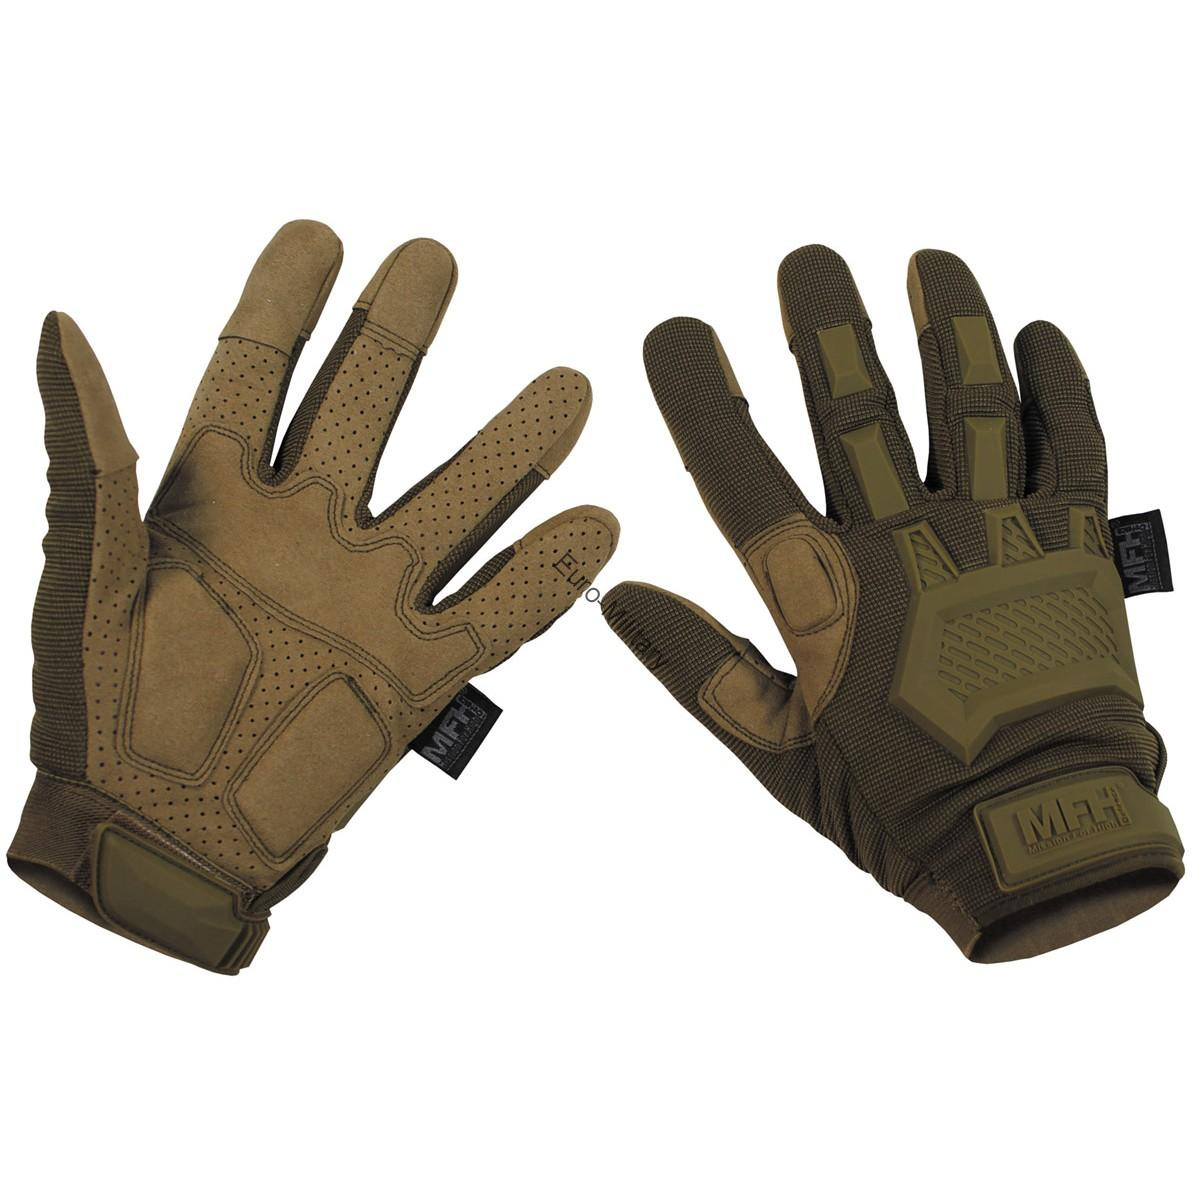 Tactical Military Shooting Profi Gloves - Coyote